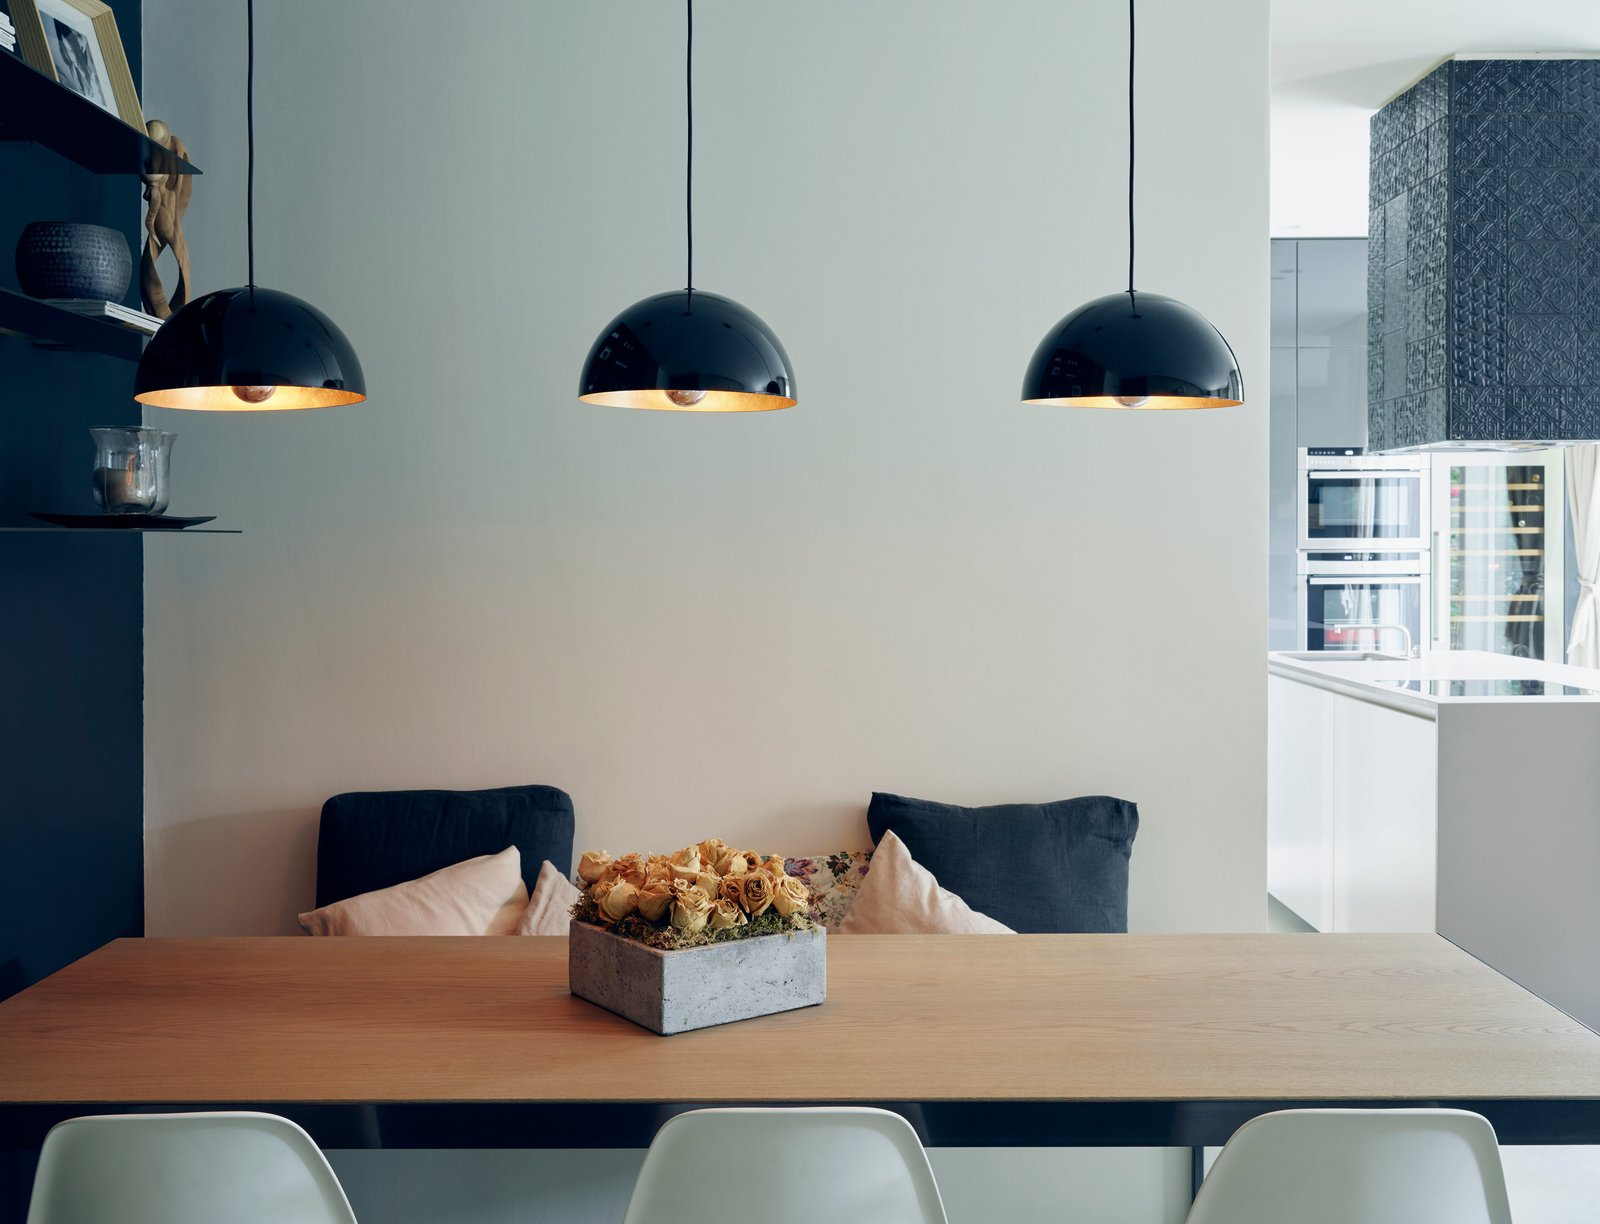 Dining Room, Table, Pendant Lighting, Chair, Lamps, and Ceiling Lighting A dining nook sits just inside the entrance of Andrea Maffei and Rossella Acierno's 850-square-foot residence.  Photo 3 of 15 in This Growing Family Maximizes Every Last Inch in Their 850-Square-Foot Apartment